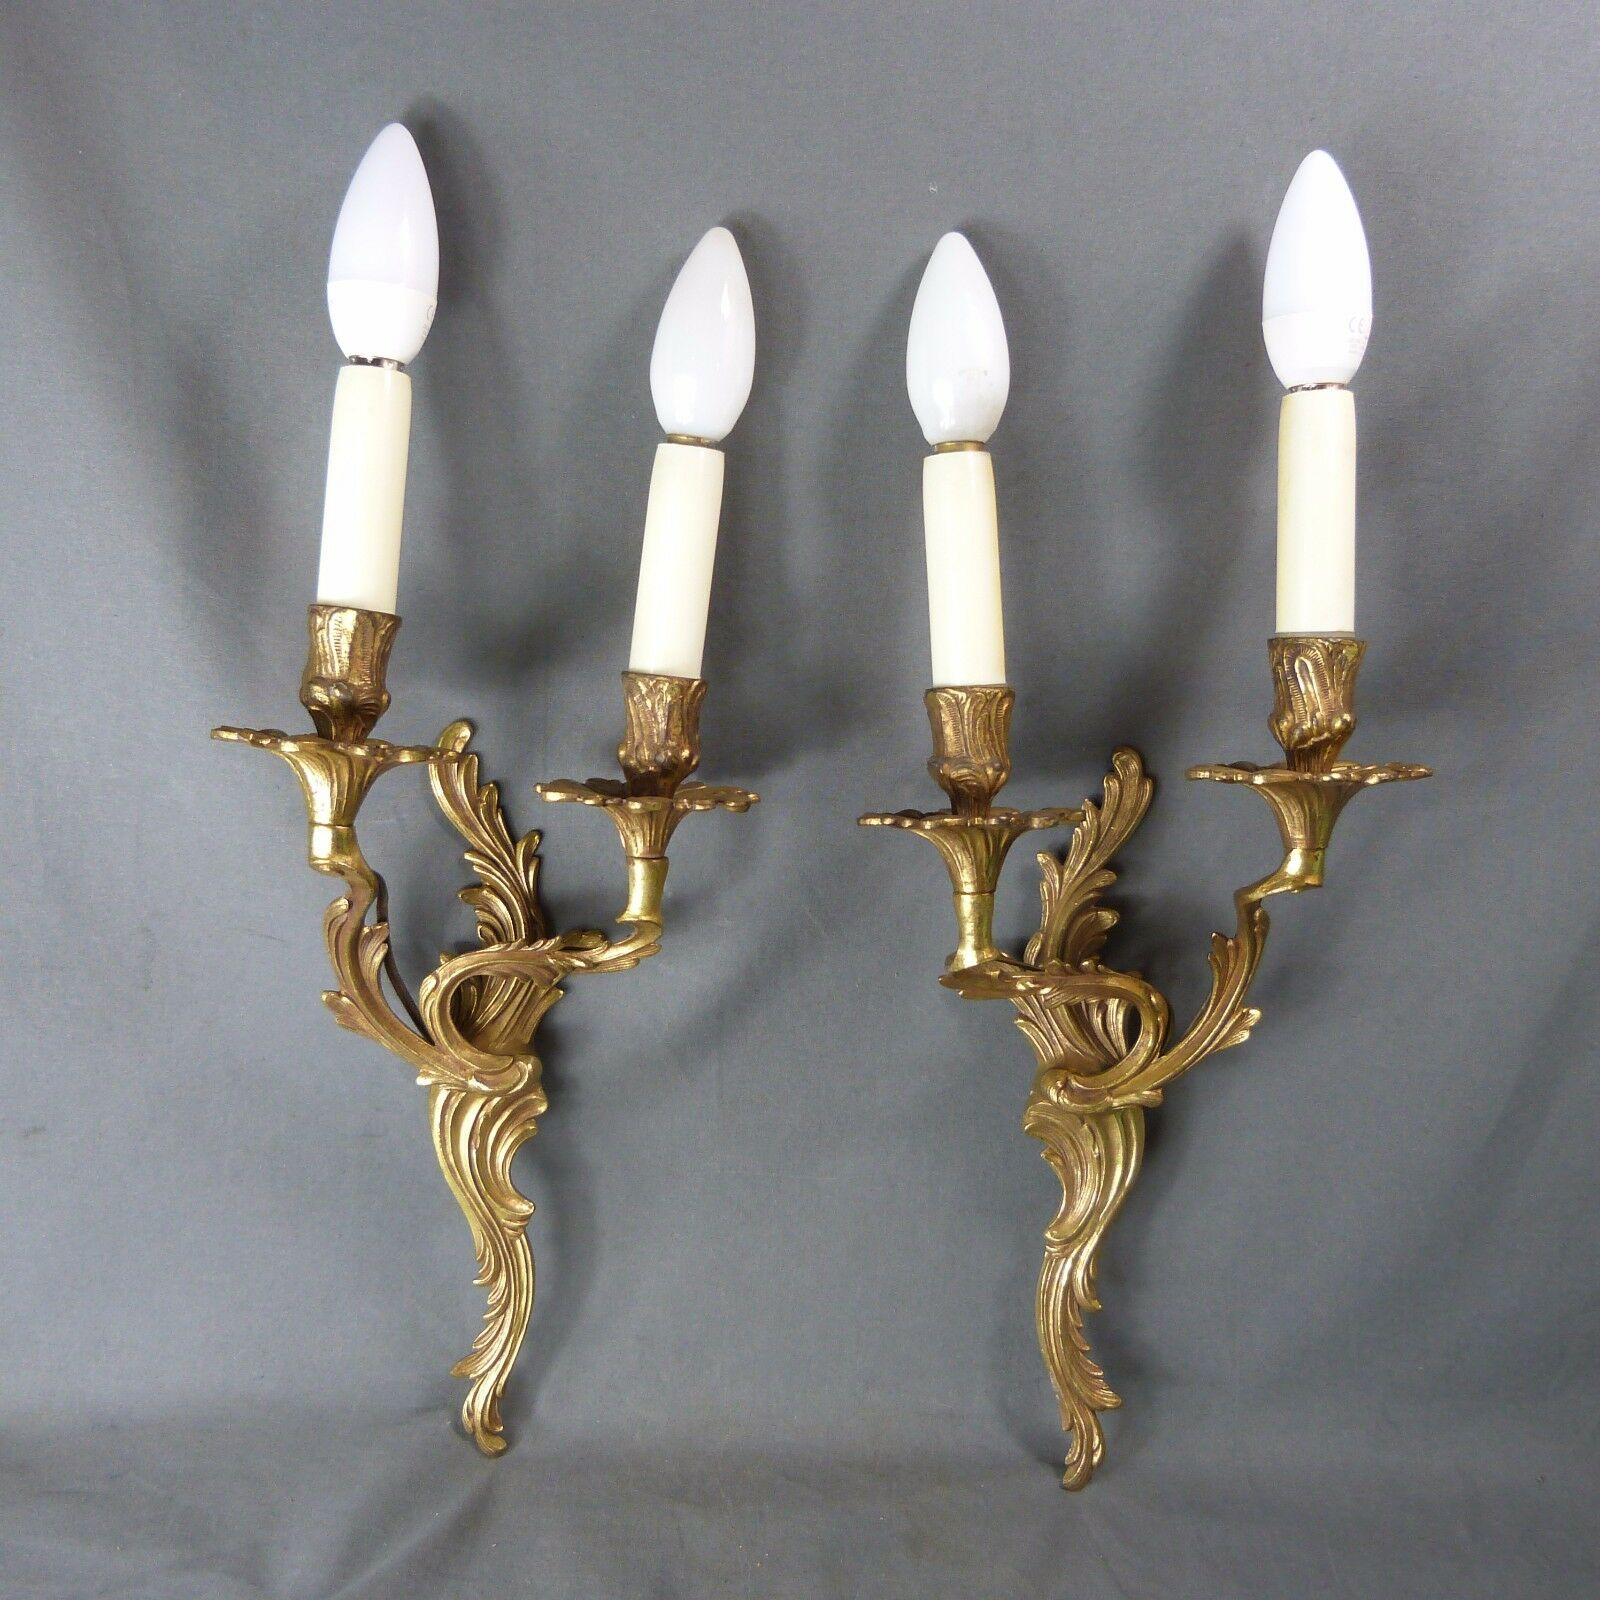 Pair Of French Antique Bronze Rococco Style Candle Wall Sconces Lights